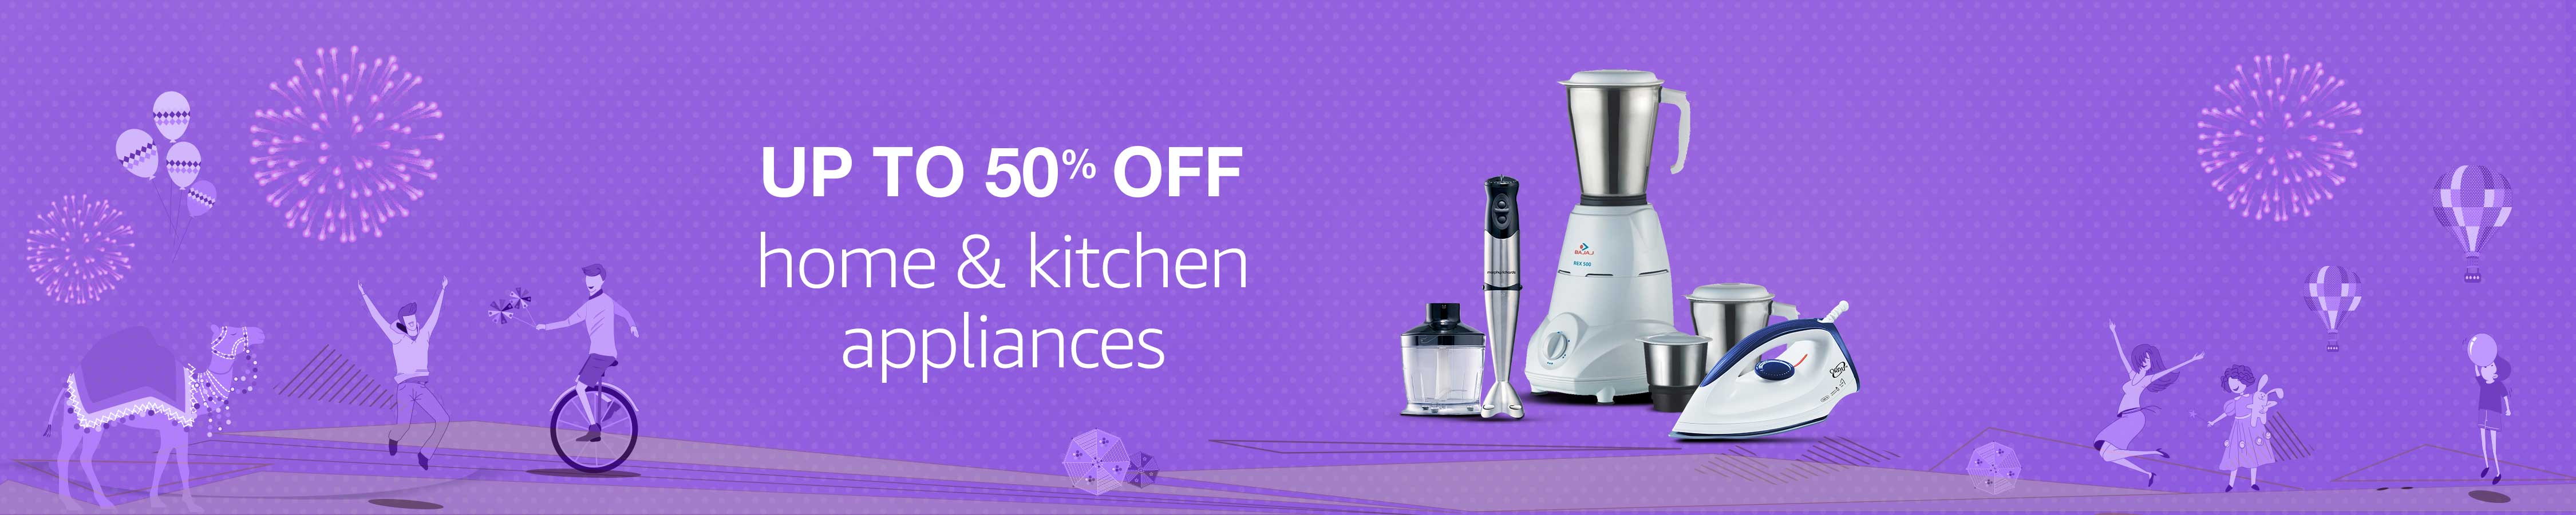 H&K Appliances Deals